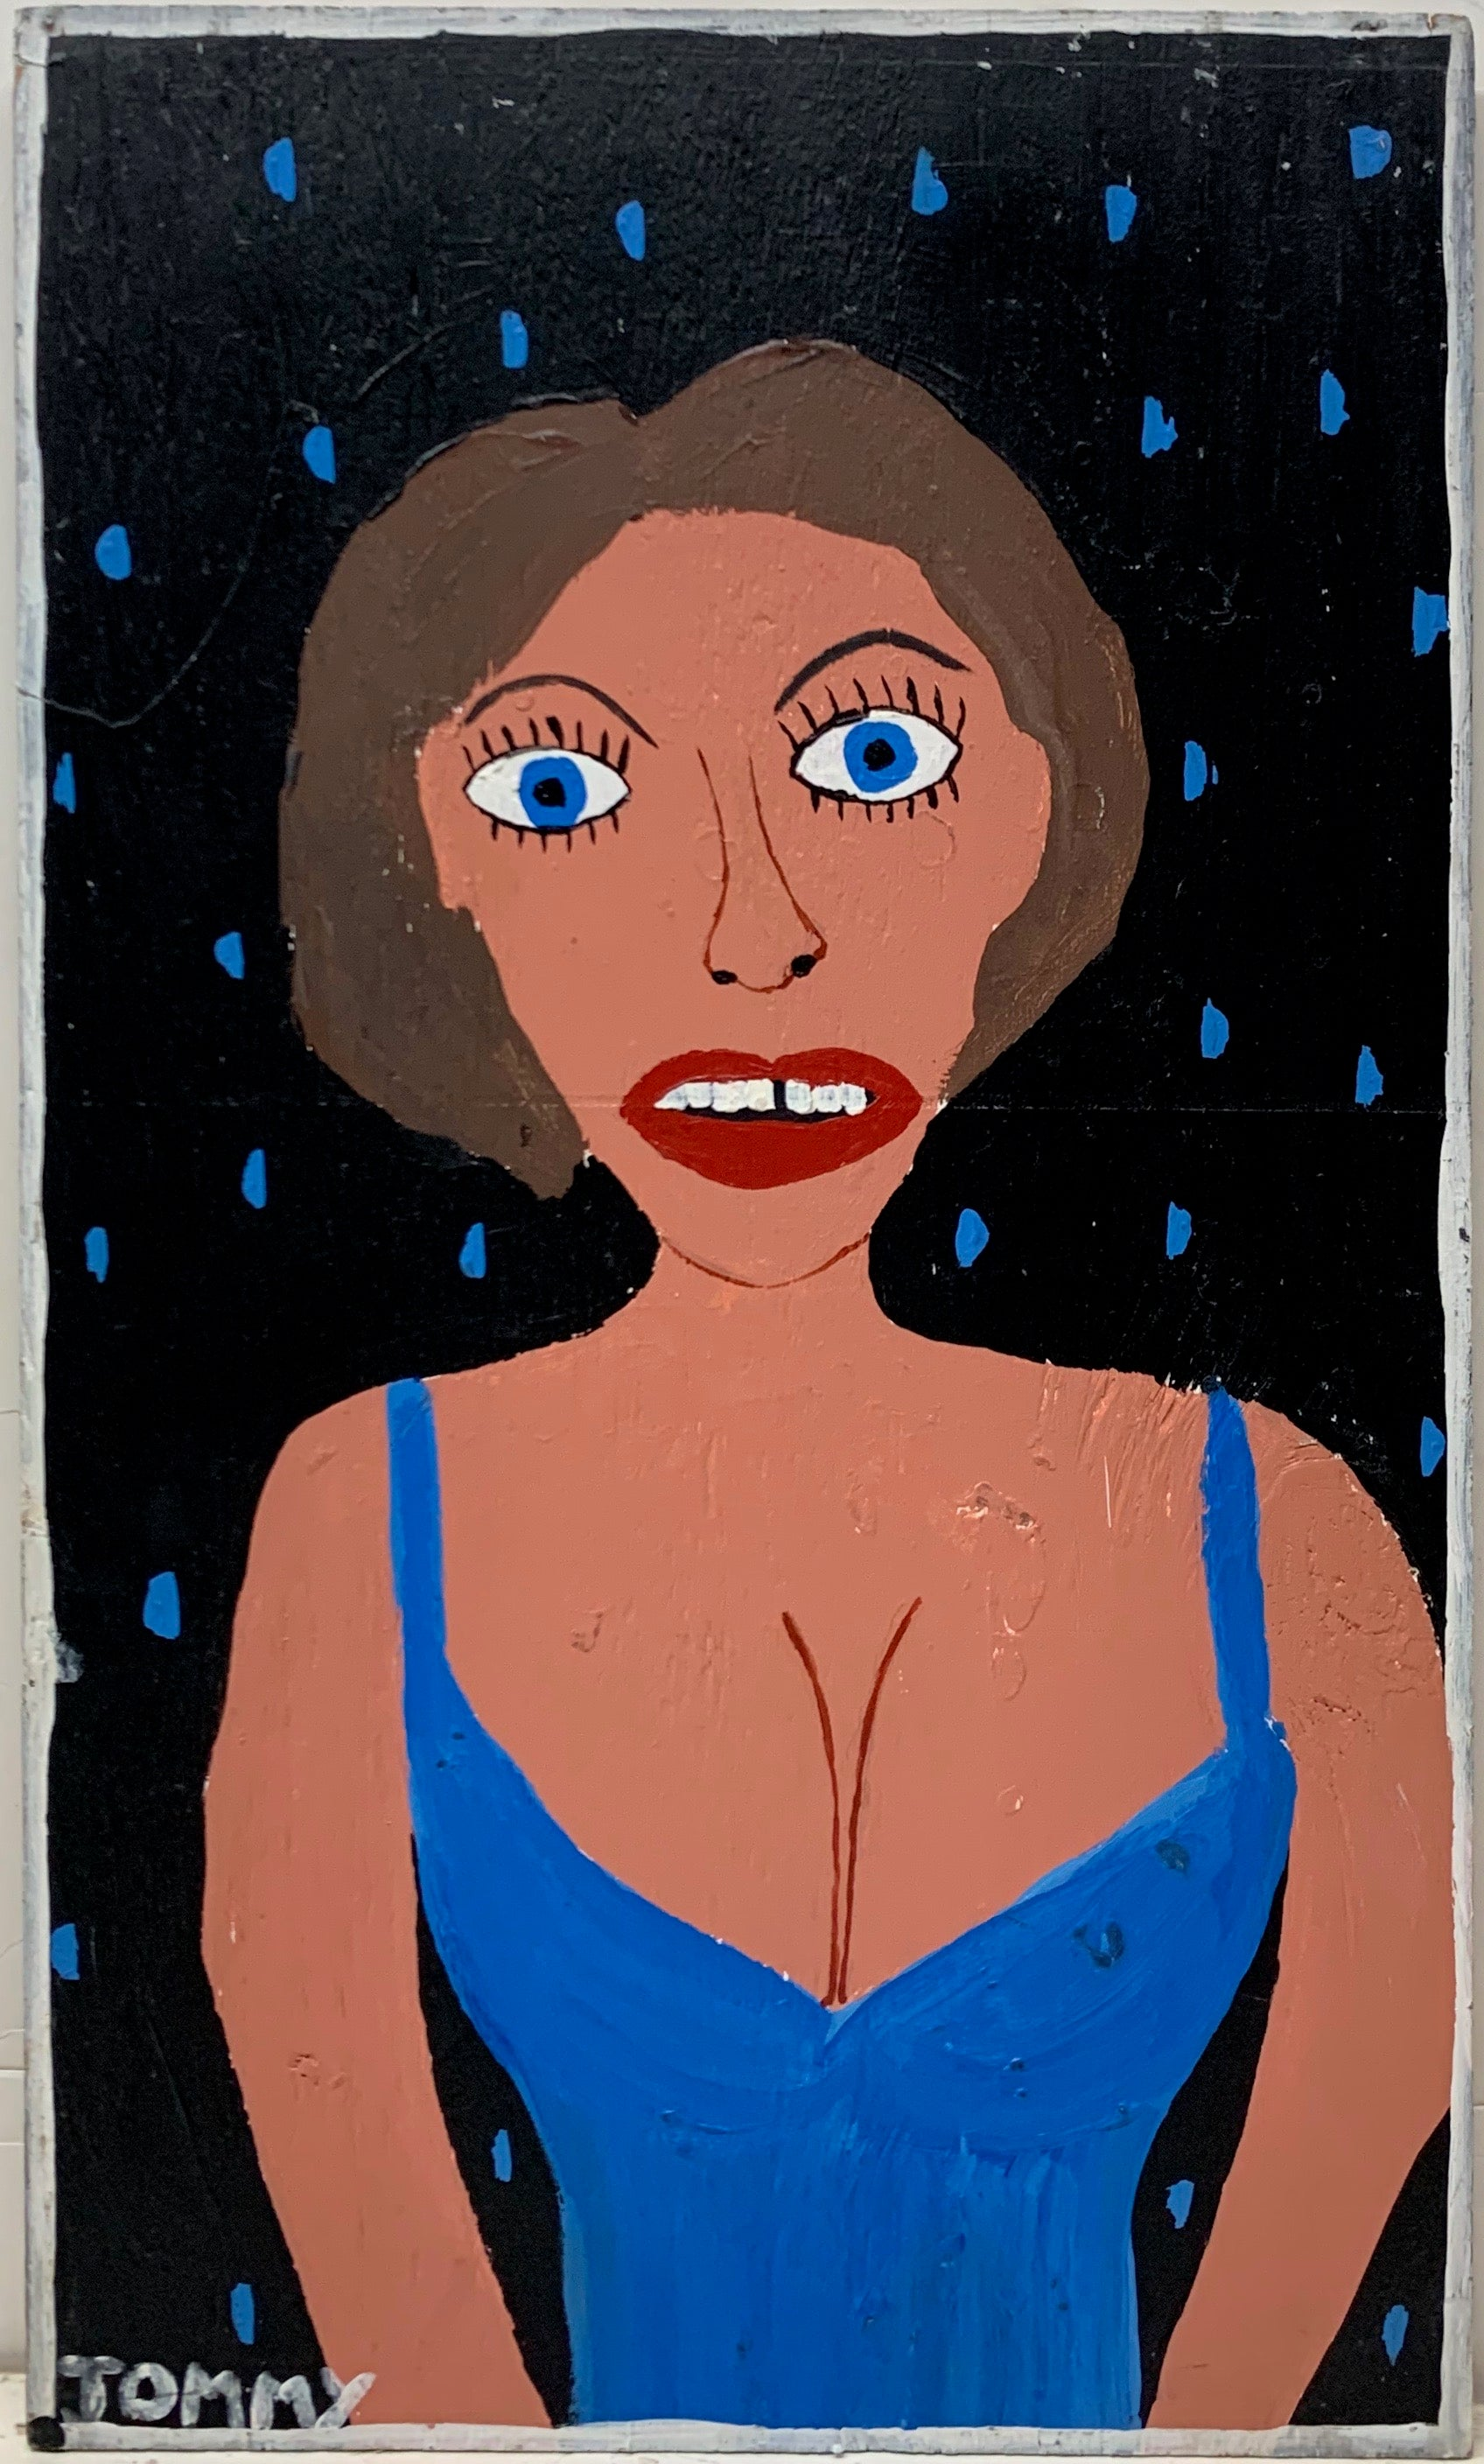 Tommy Cheng portrait of Sophia Loren, wearing a blue dress and a red lip.